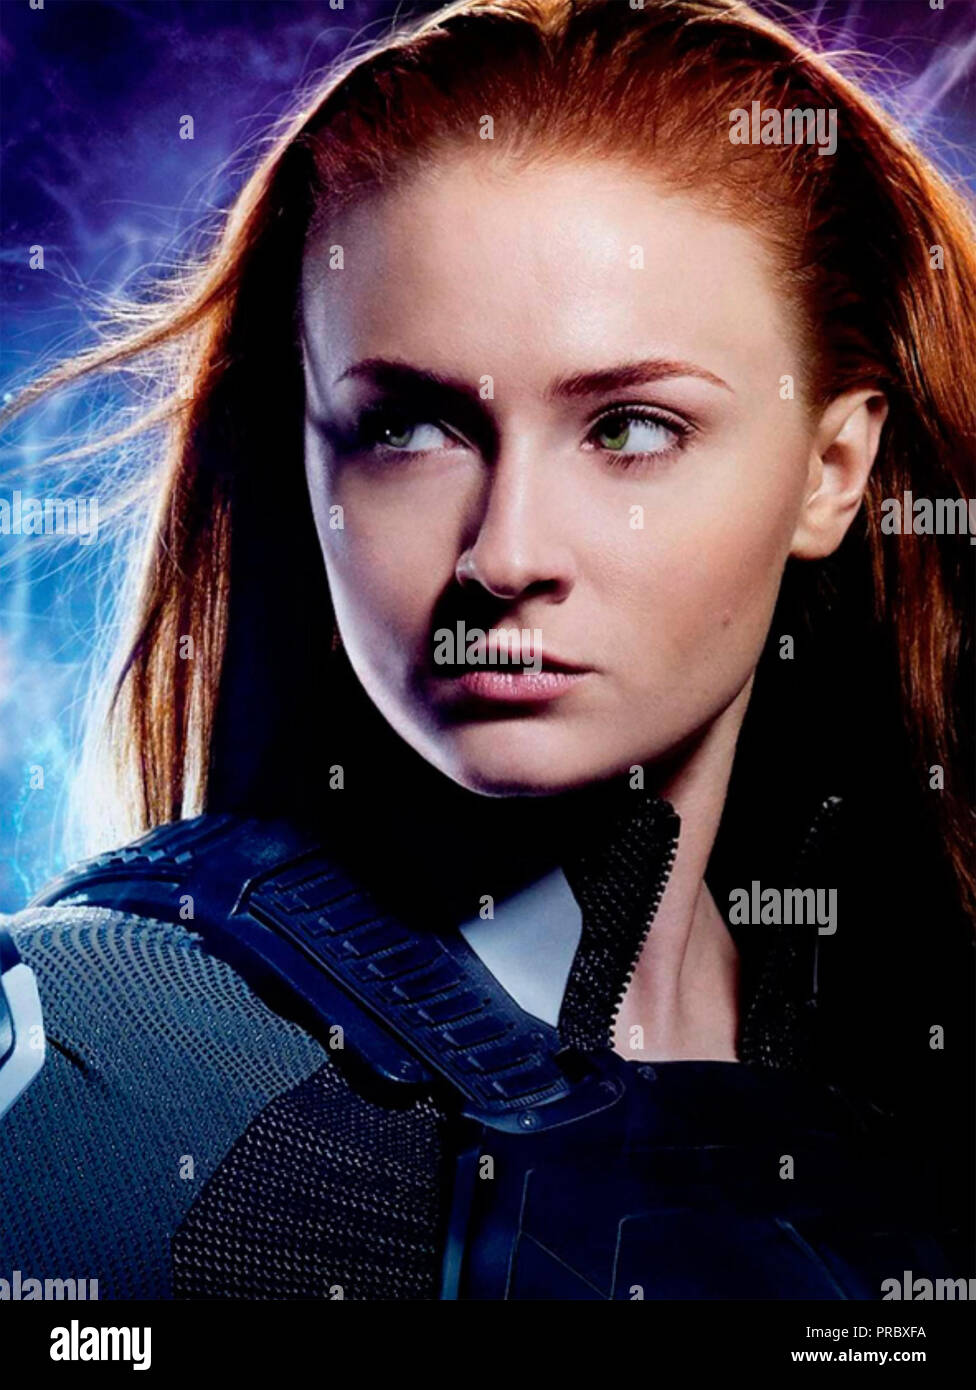 X Men Dark Phoenix 2019 20th Cent Ury Fox Film With Sophie Turner Stock Photo Alamy